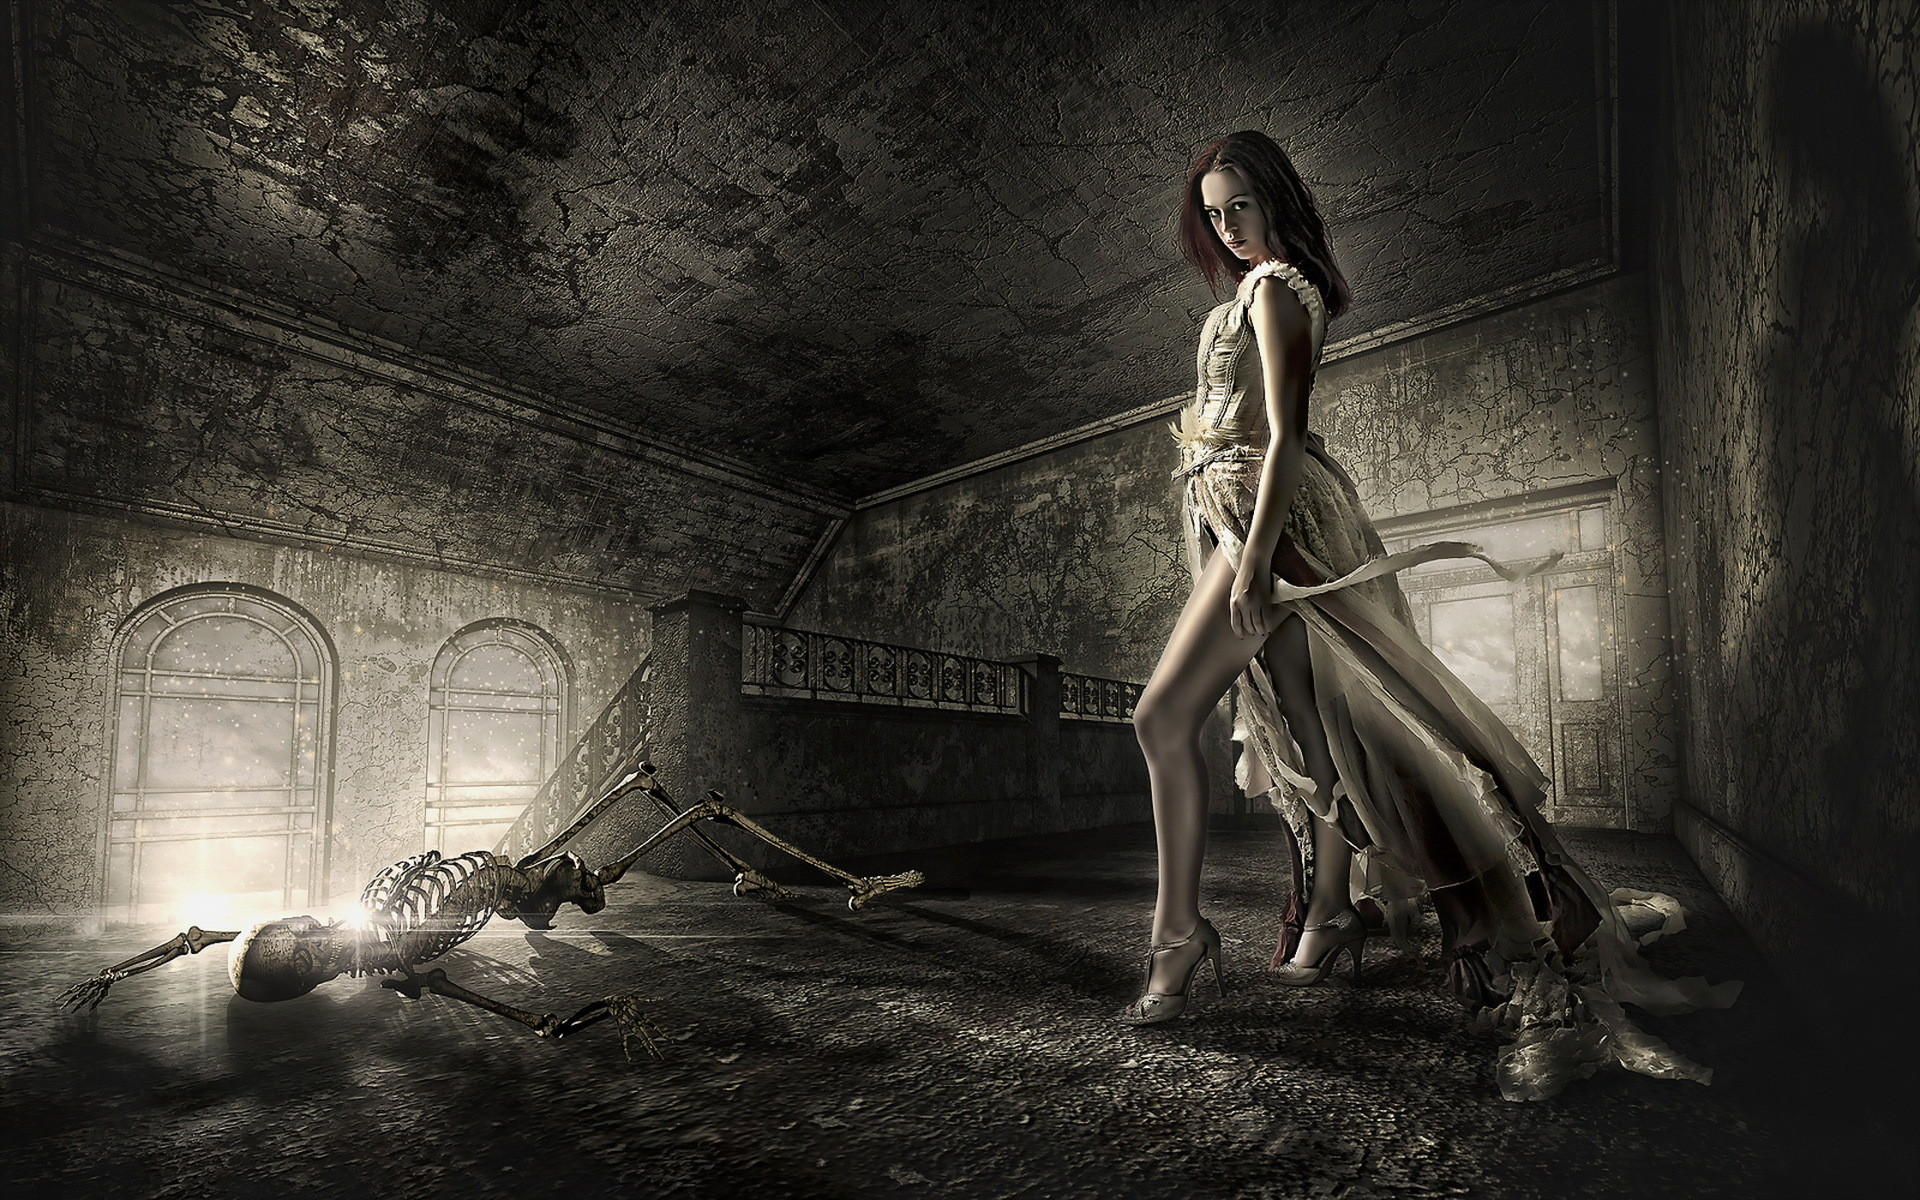 1920x1200 Dead Death Decay Lost Soul Skeleton Dark Fantasy Gothic Girl Wallpaper At Dark  Wallpapers